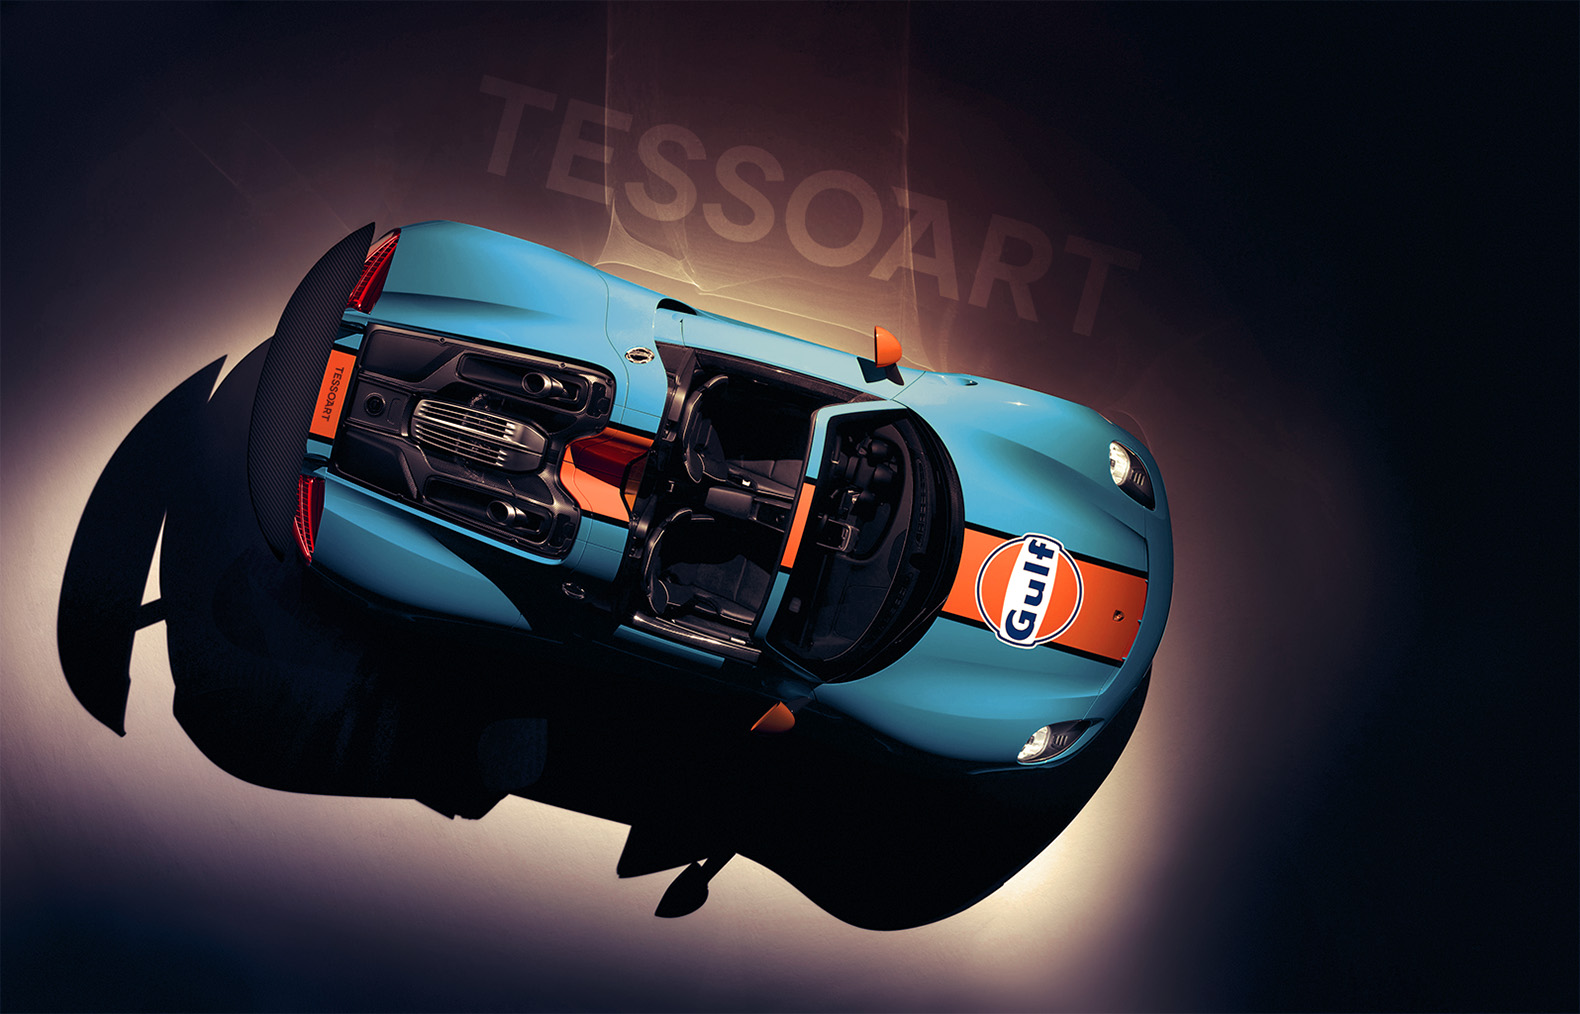 porsche 918 spyder with gulf livery imagined gtspirit. Black Bedroom Furniture Sets. Home Design Ideas